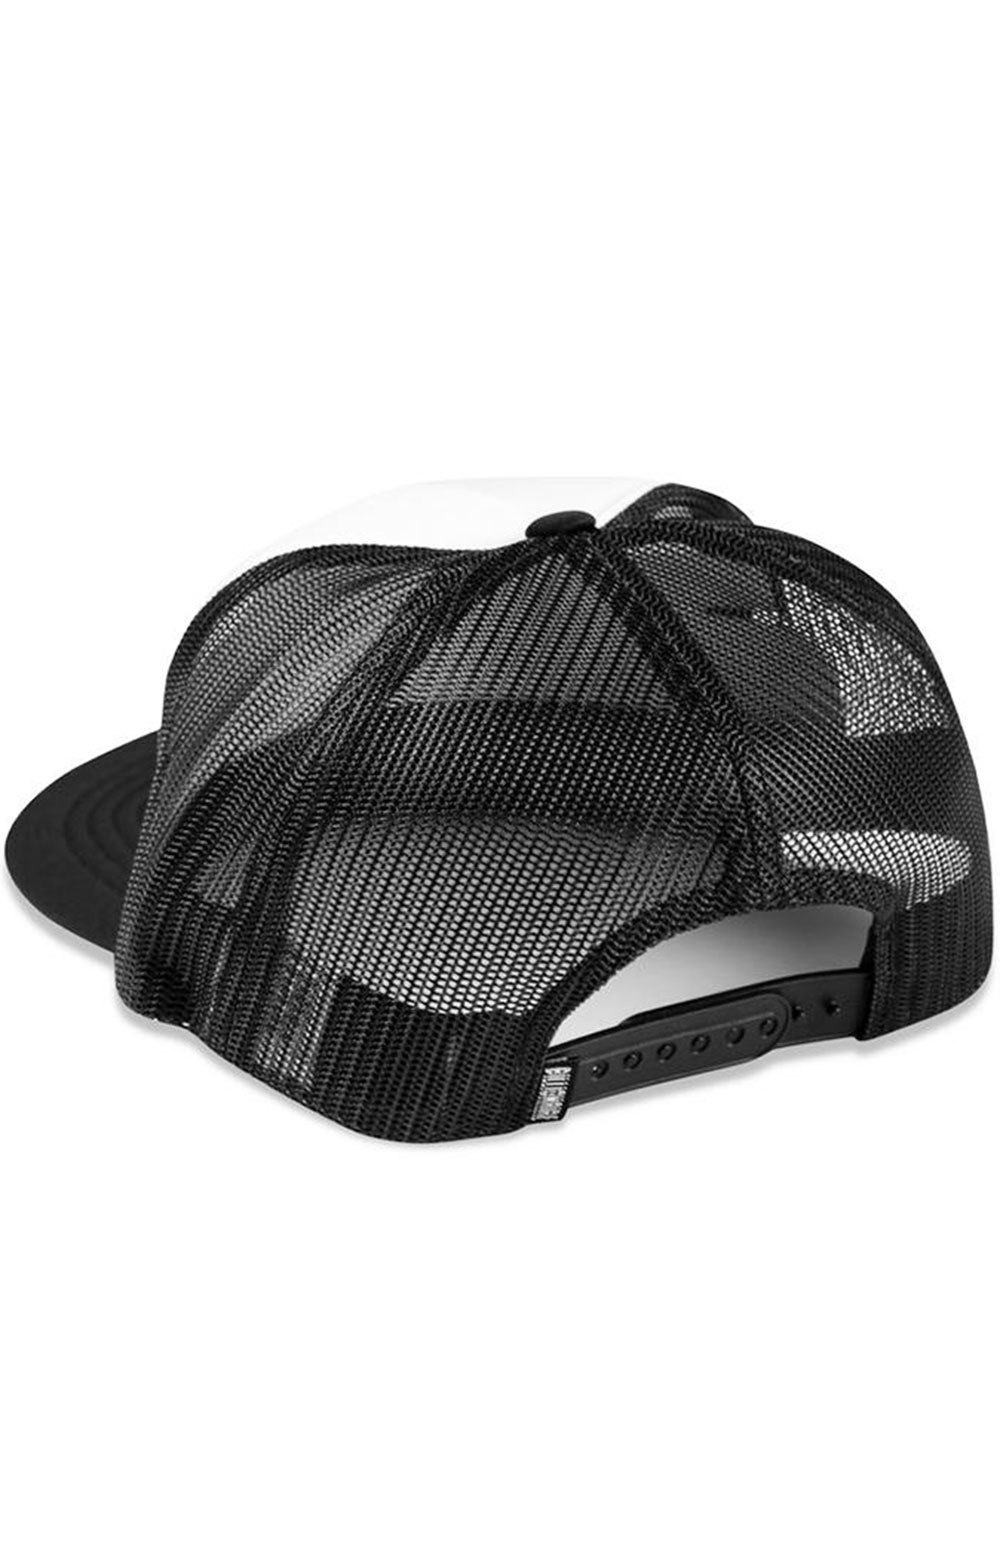 BB Helmet Trucker Hat - Black  2